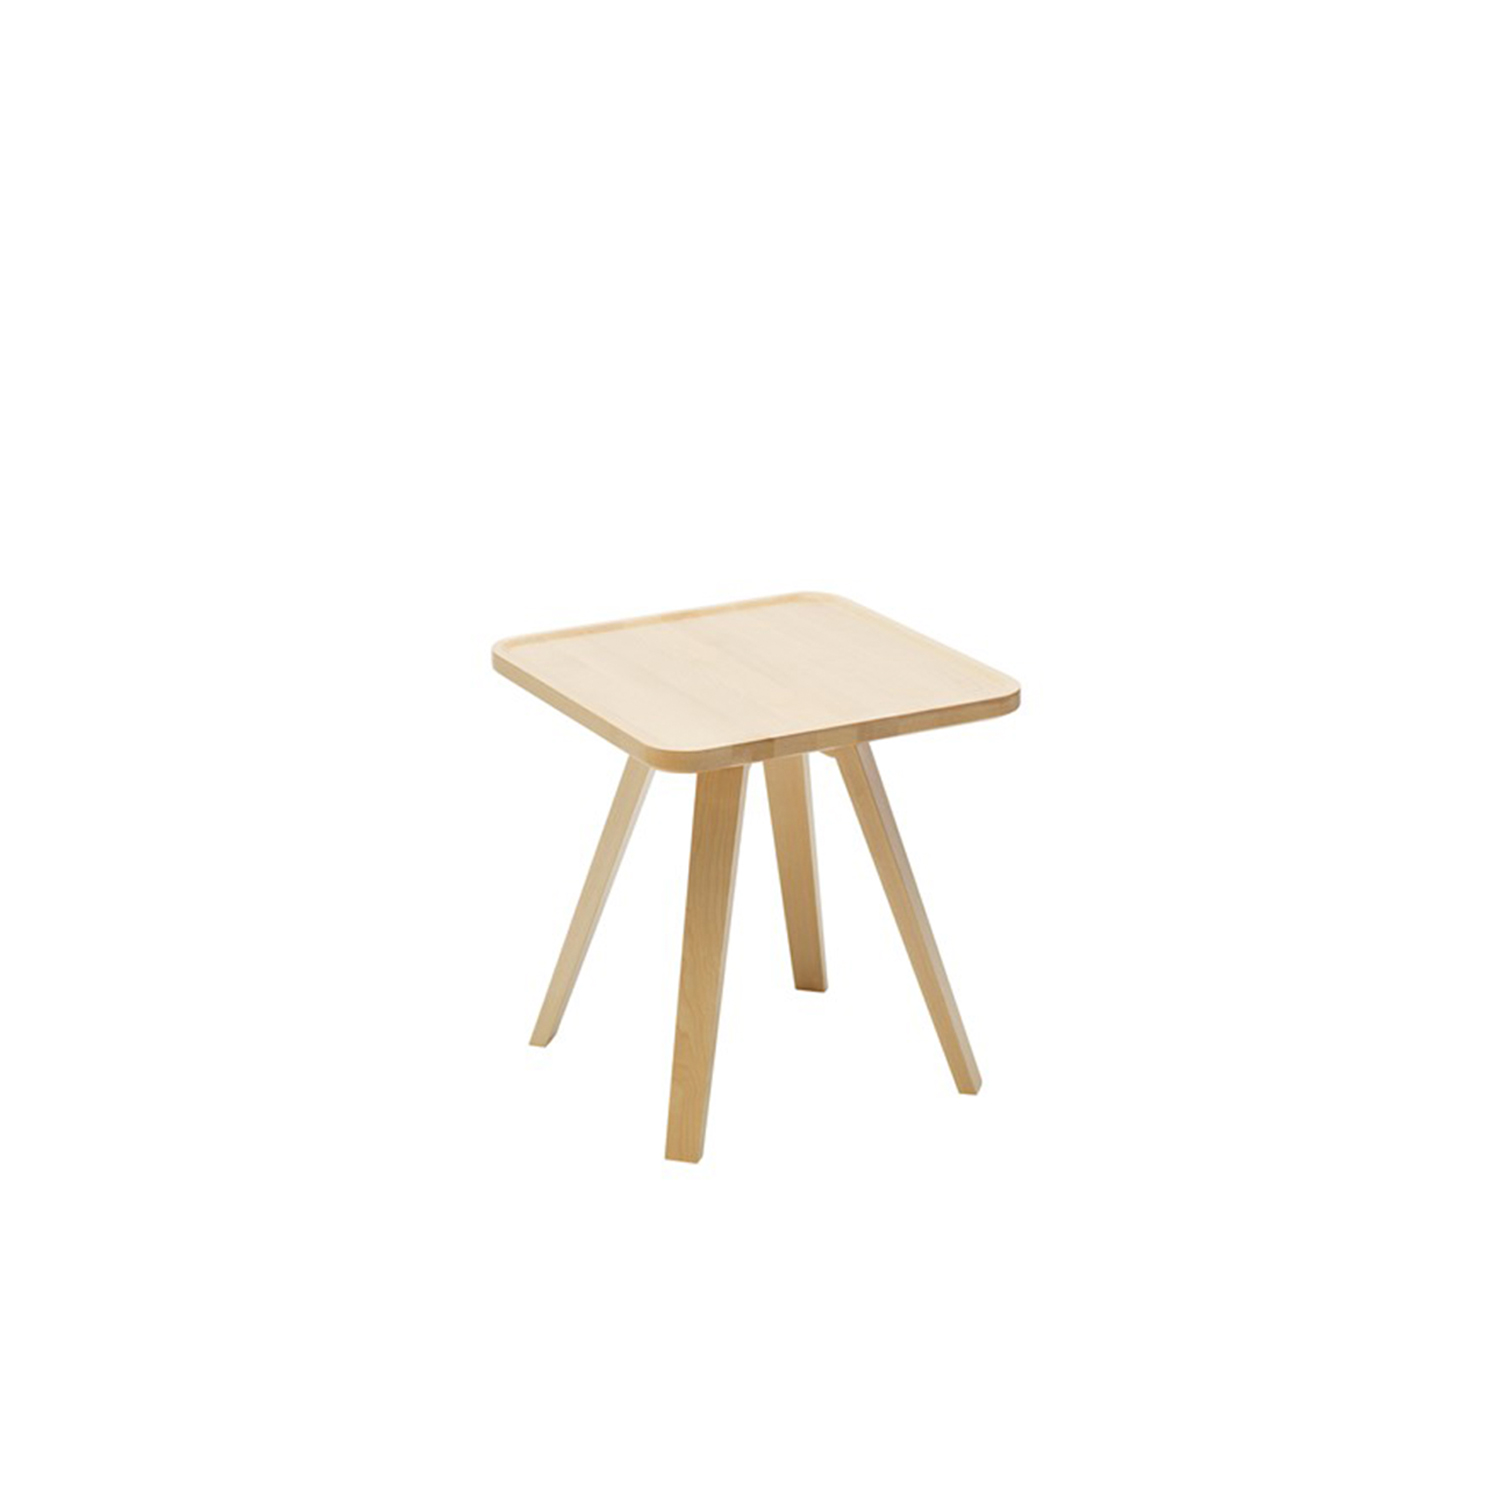 Mill Square Coffee Table - Mill (2012) is a table with a solid wooden top and legs. The tabletop has been milled down to produce its distinctive appearance. Mill is available with a round, square or rectangular top in a number of different sizes and in heights of 460, 590 and 720 mm. The table is made of solid wood, so it can be sanded down and relacquered a number of times, making it suitable for use in settings where it is subjected to a lot of wear and tear.  Mill comes in a choice of oak, birch, ash, standard stains on ash and white glazed oak or ash. The table is also available in standard colors with tabletop made in MDF. Special sizes and other finishes upon request. You can use Mill to furnish cafés, kitchens and living rooms, or in hotels, schools, waiting areas etc.  Additional heights and dimensions are available, please see technical sheet attached and enquire for more details. | Matter of Stuff